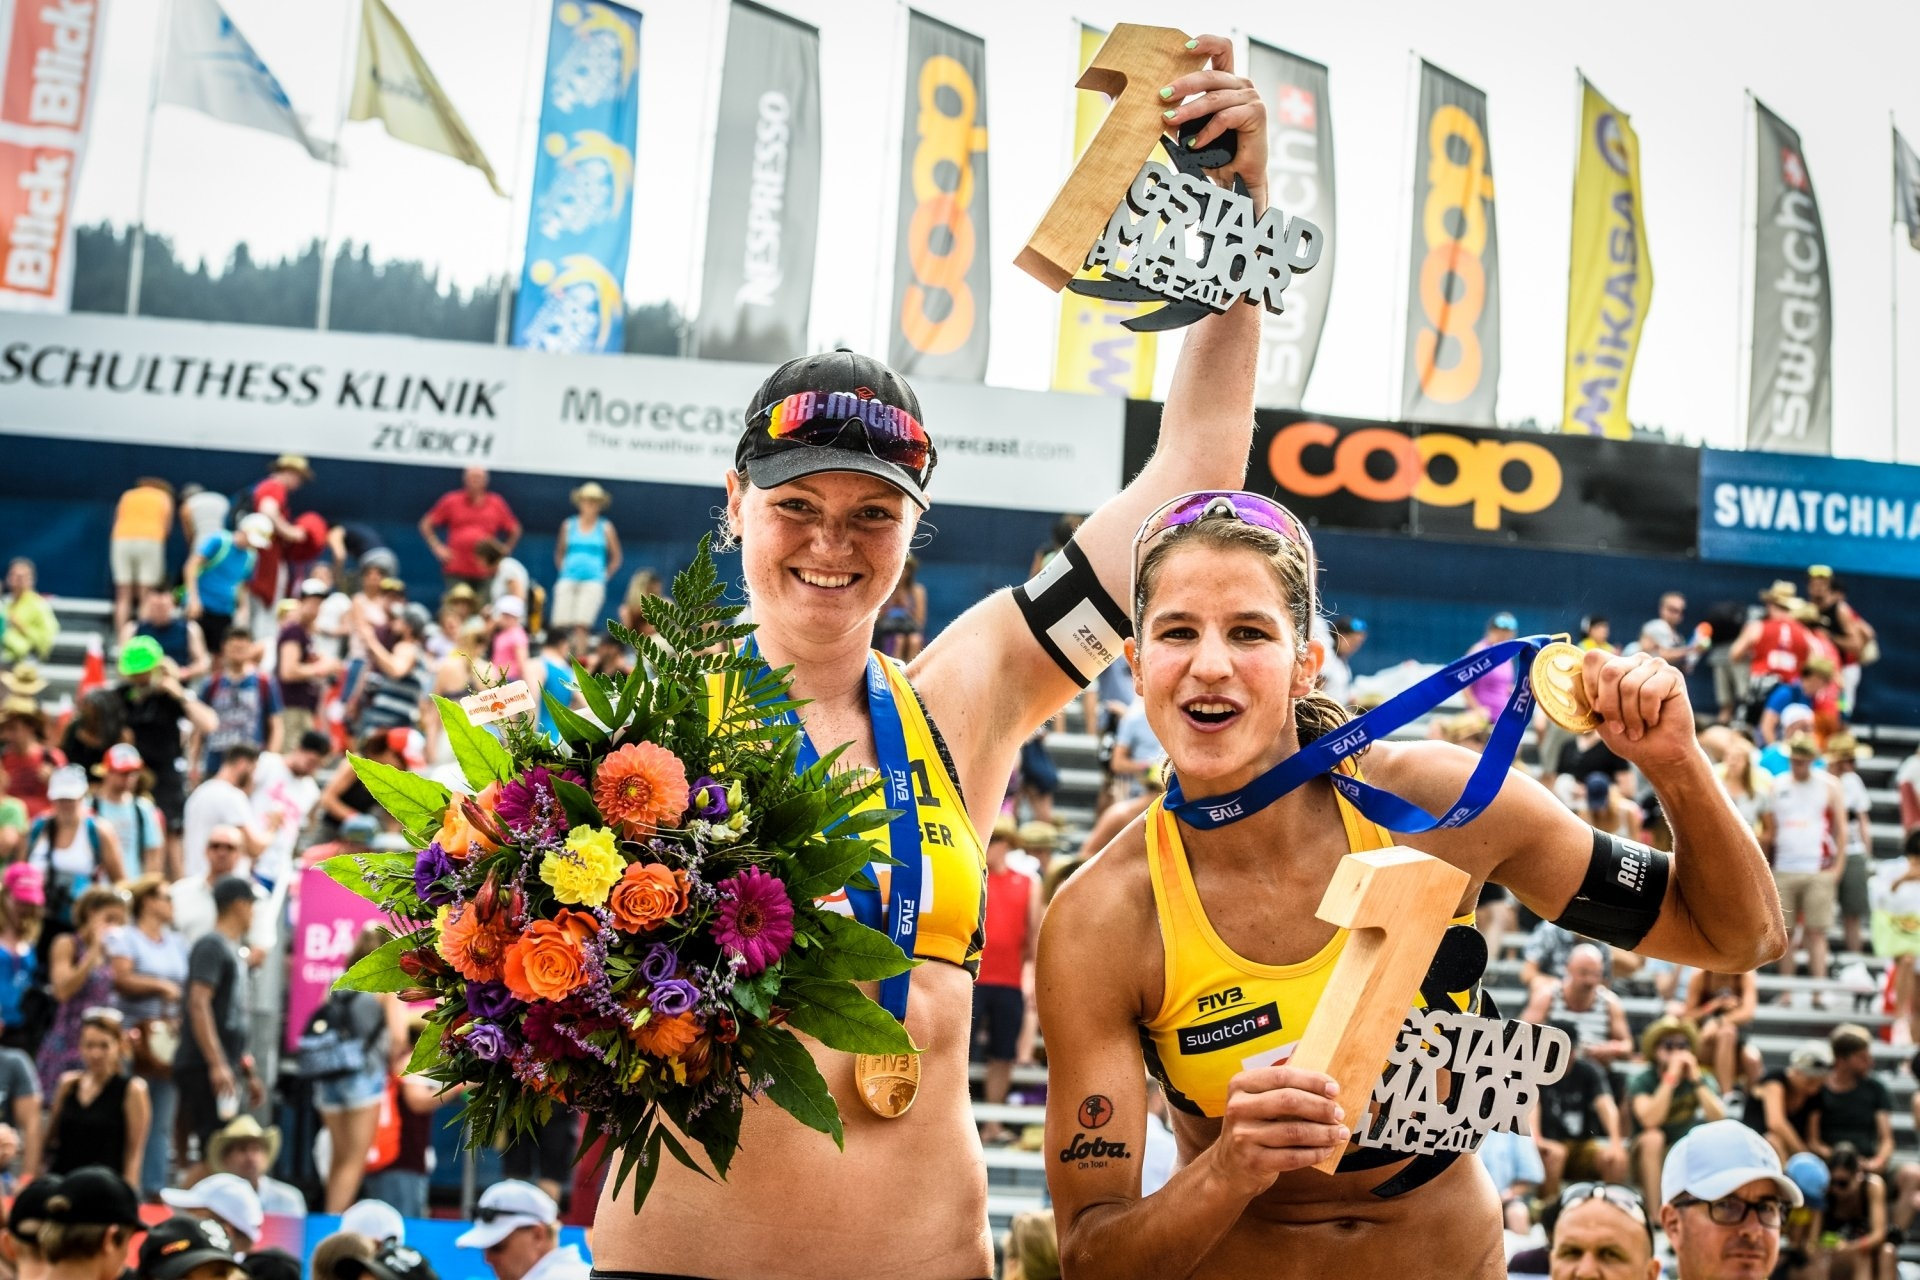 Sude and Laboureur topped the podium in Gstaad in 2017